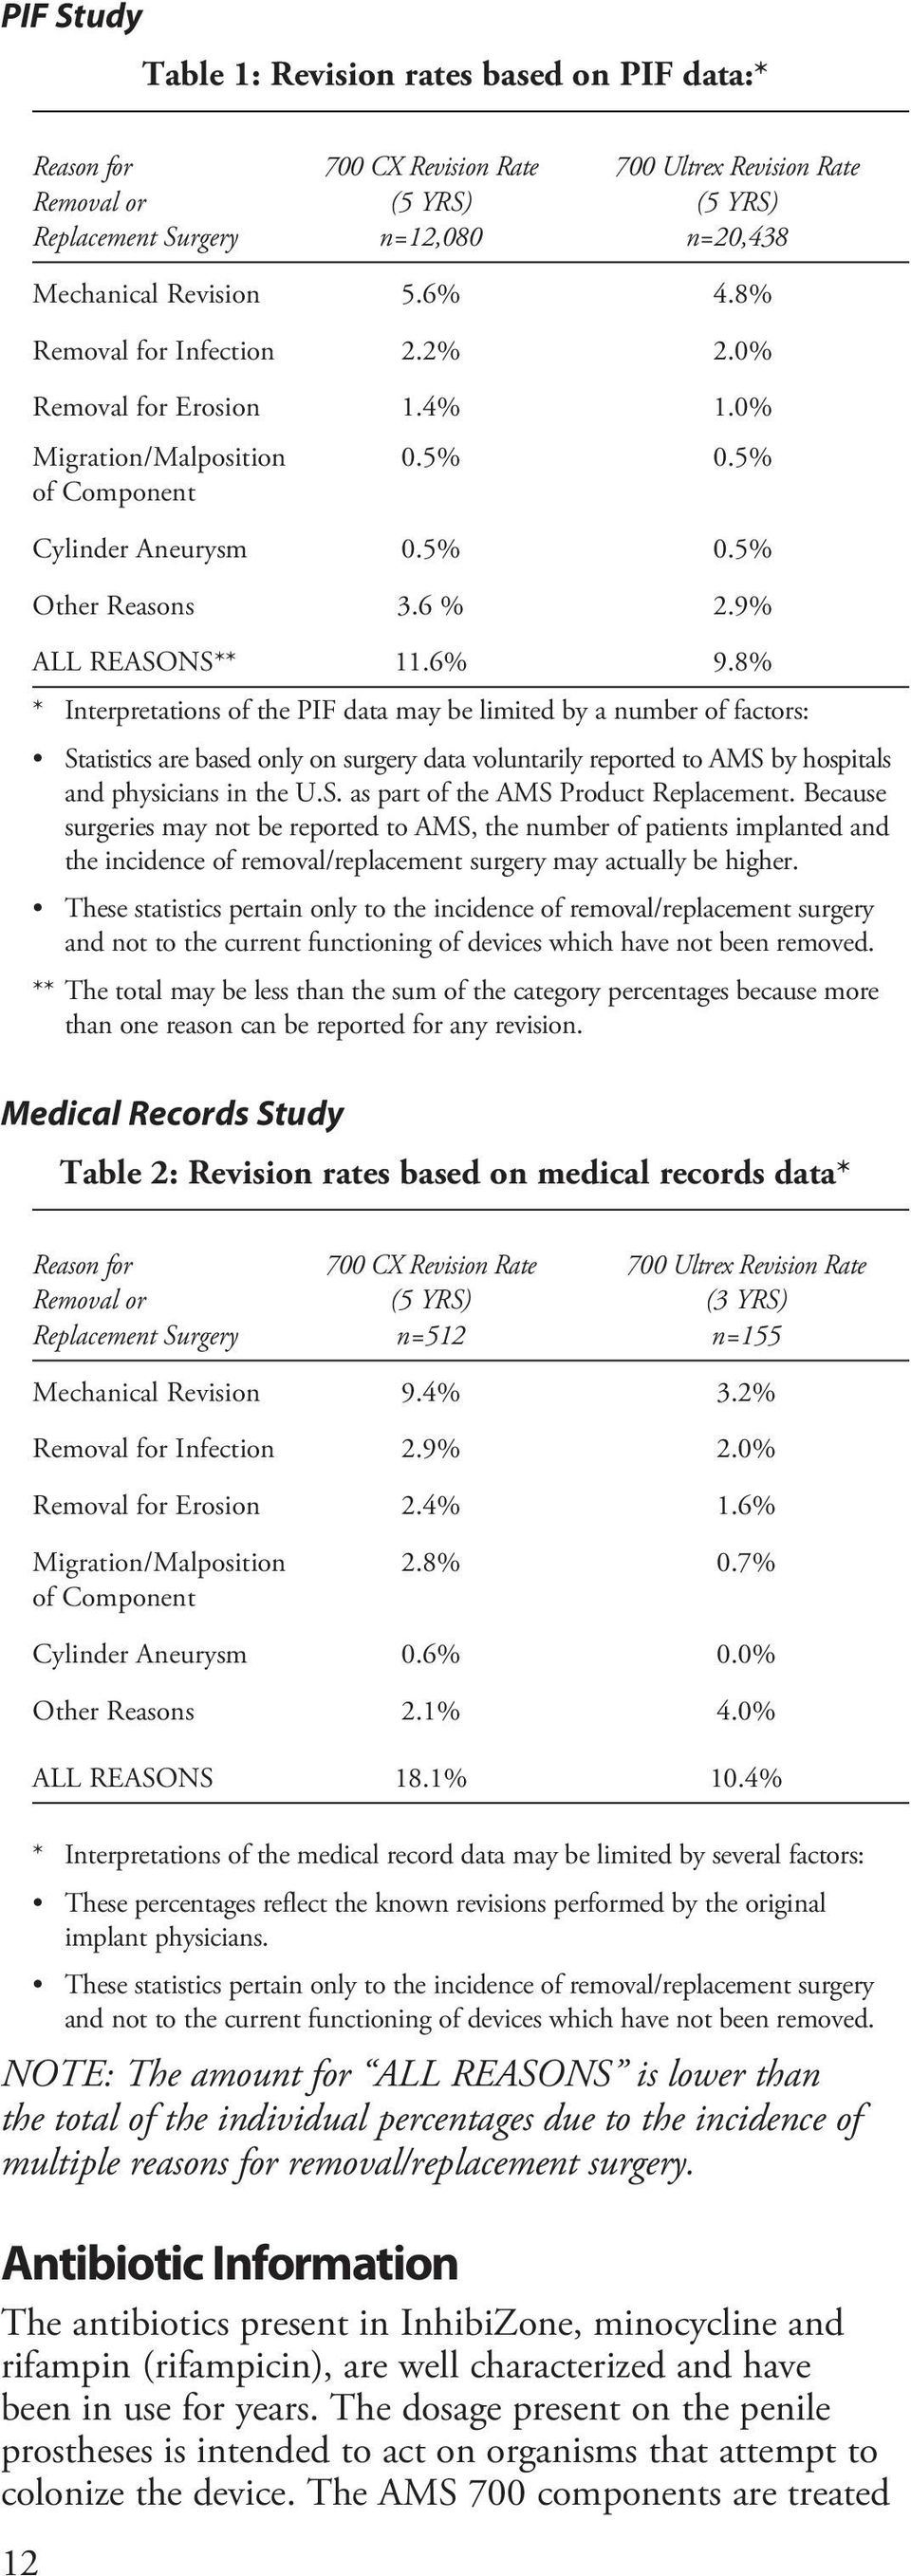 8% * Interpretations of the PIF data may be limited by a number of factors: Statistics are based only on surgery data voluntarily reported to AMS by hospitals and physicians in the U.S. as part of the AMS Product Replacement.